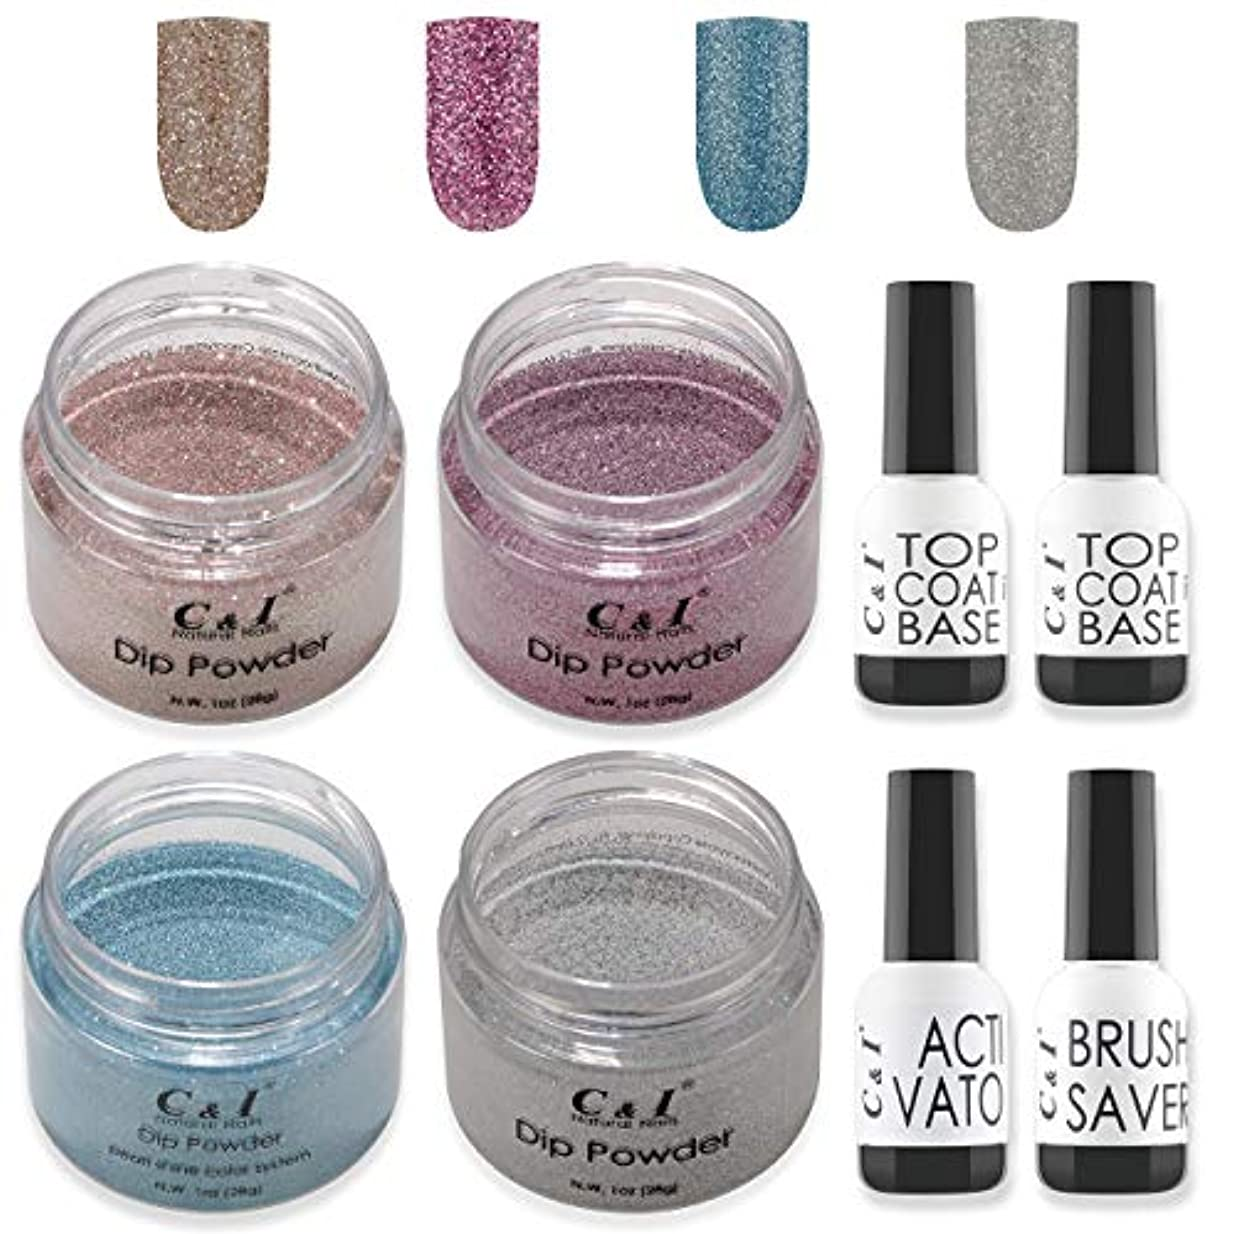 告白属性未亡人C&I Dip Powder Nail Colors & Liquids Set, 4 colors and 4 liquids, glittering nail powder, N.W. 28 g * 4 pcs &...